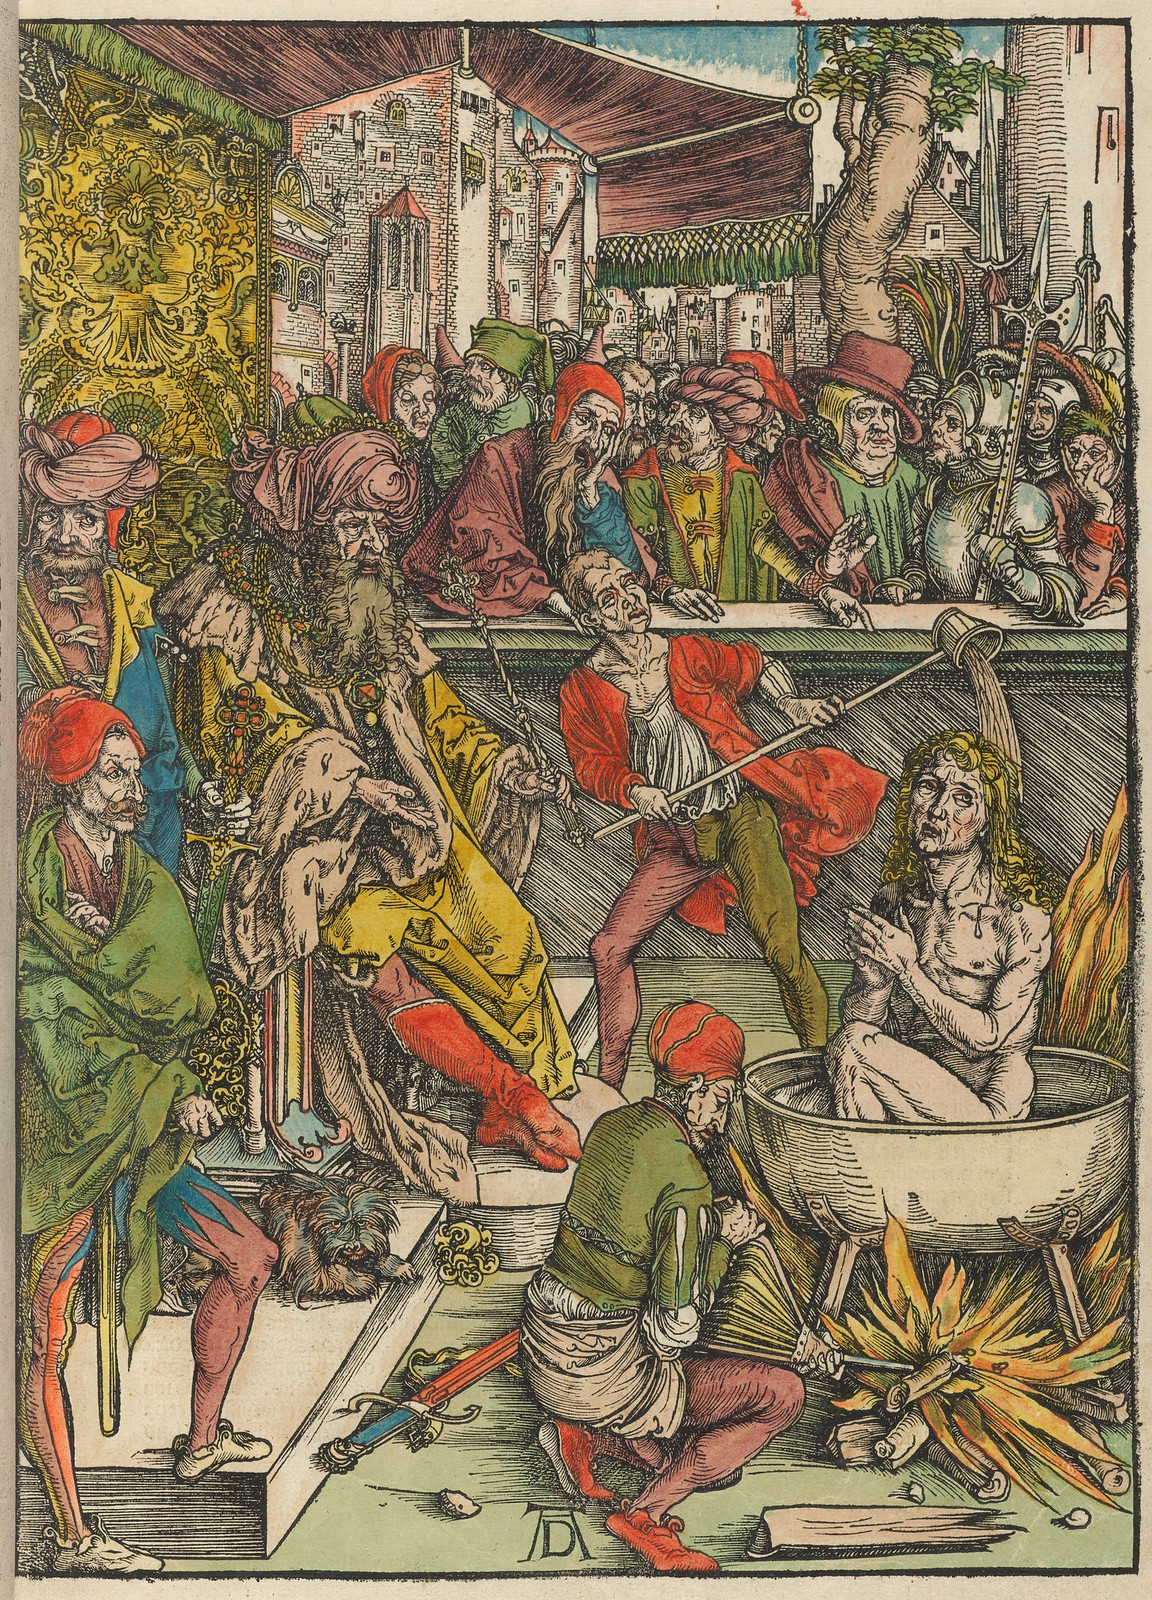 Albrecht Dürer - Martyrdom of St John, Plate one of fifteen from the Latin edition of The Apocalypse series, hand colored, printed 1511